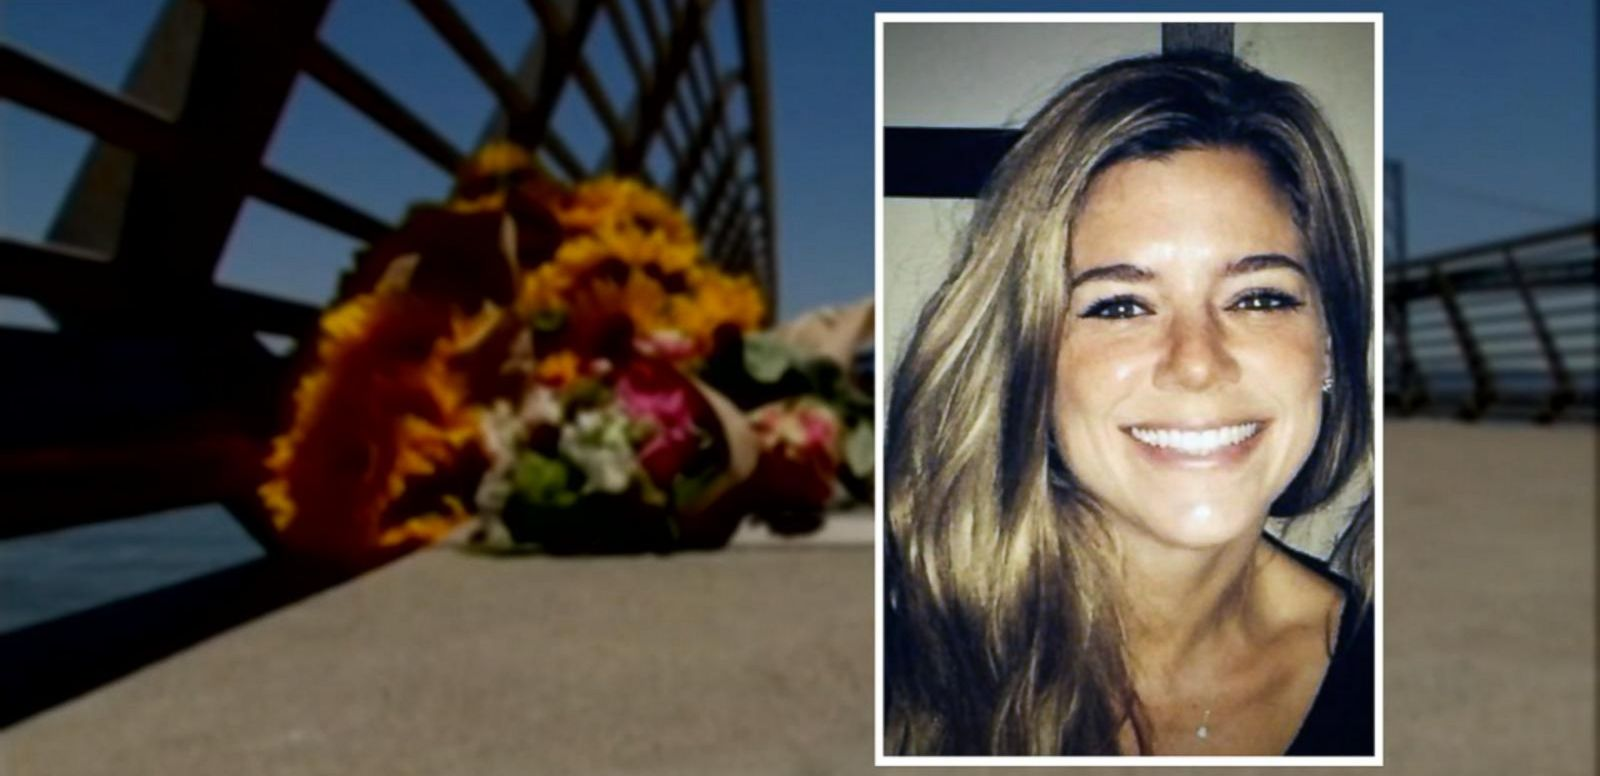 VIDEO: San Francisco Woman Killed in Suspected Random Act of Violence